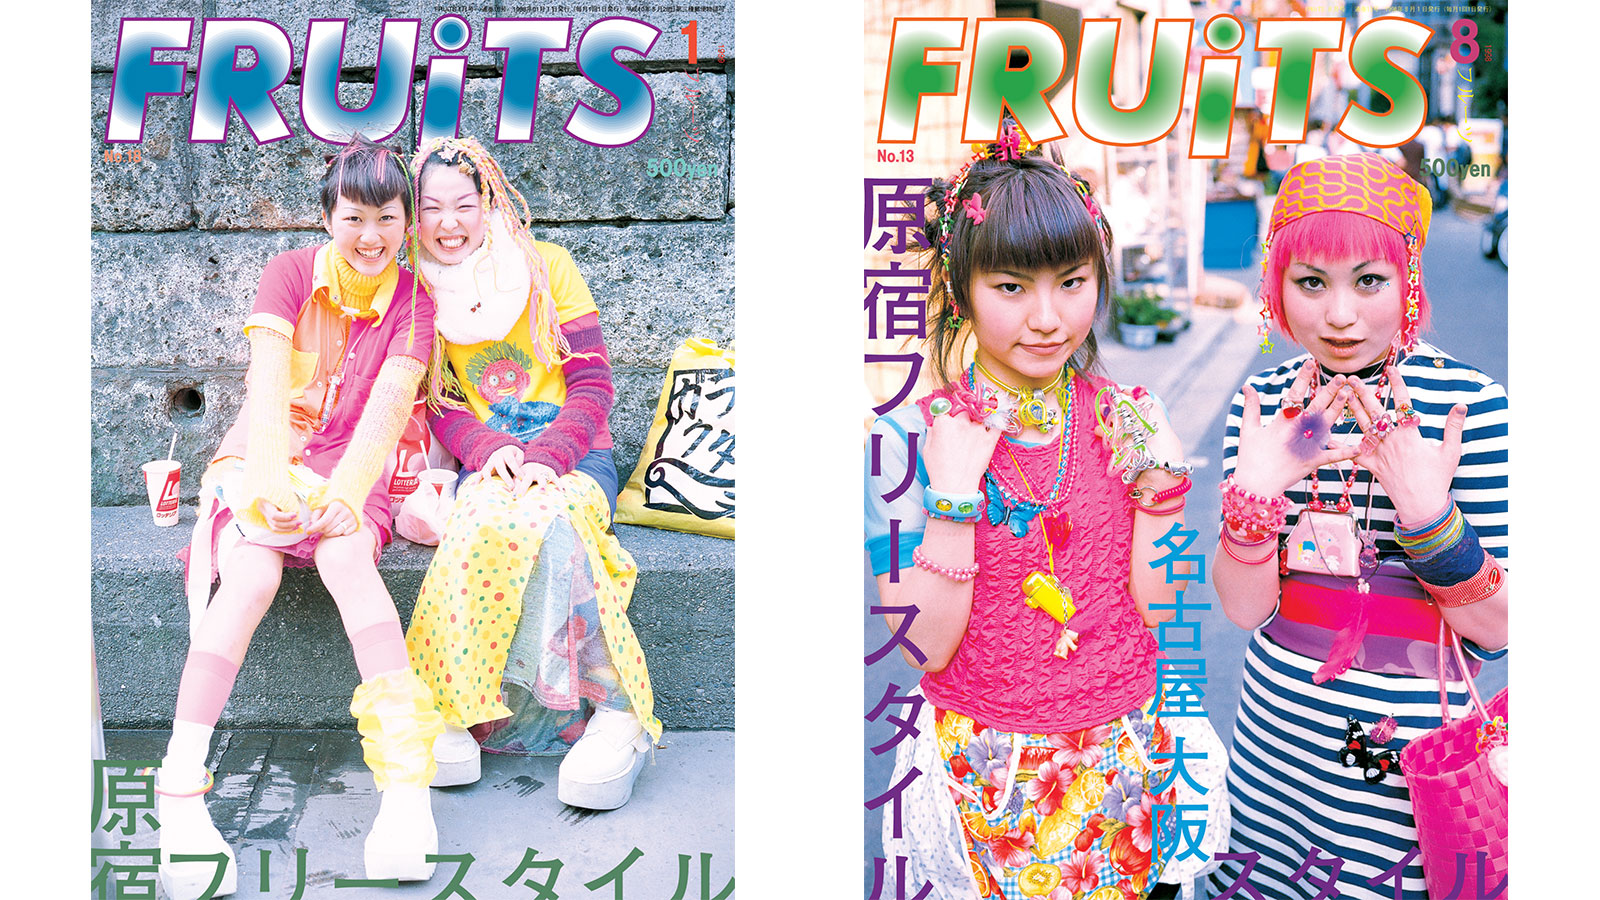 Fruits japanese street fashion magazine 10 Best-Paying Jobs for Associate Degrees - m